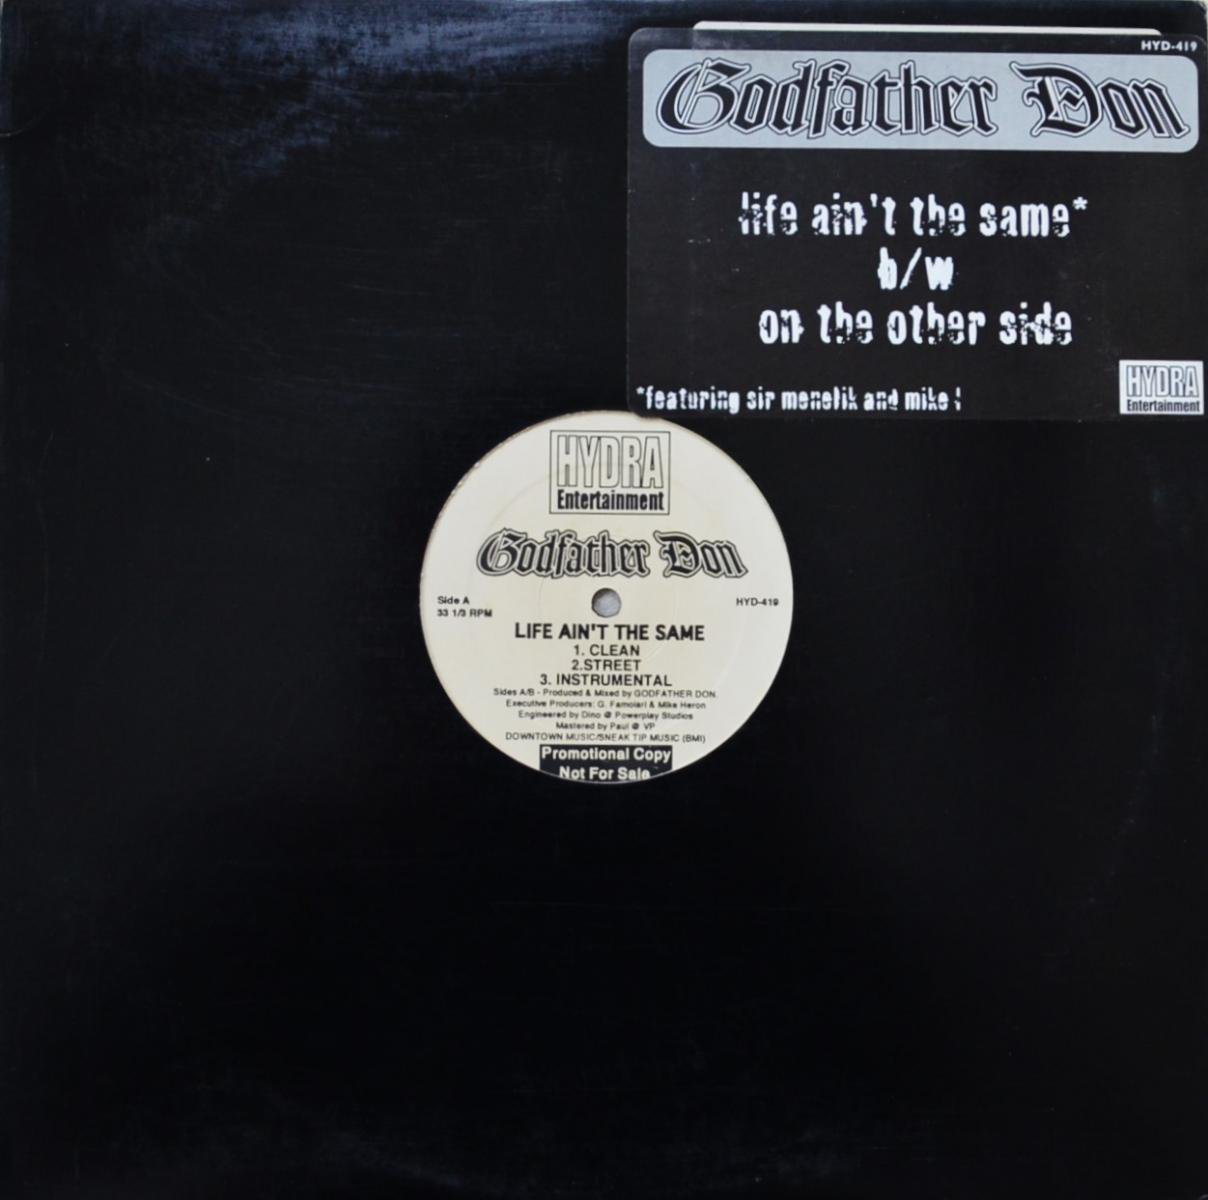 GODFATHER DON / LIFE AIN'T THE SAME / ON THE OTHER SIDE (12